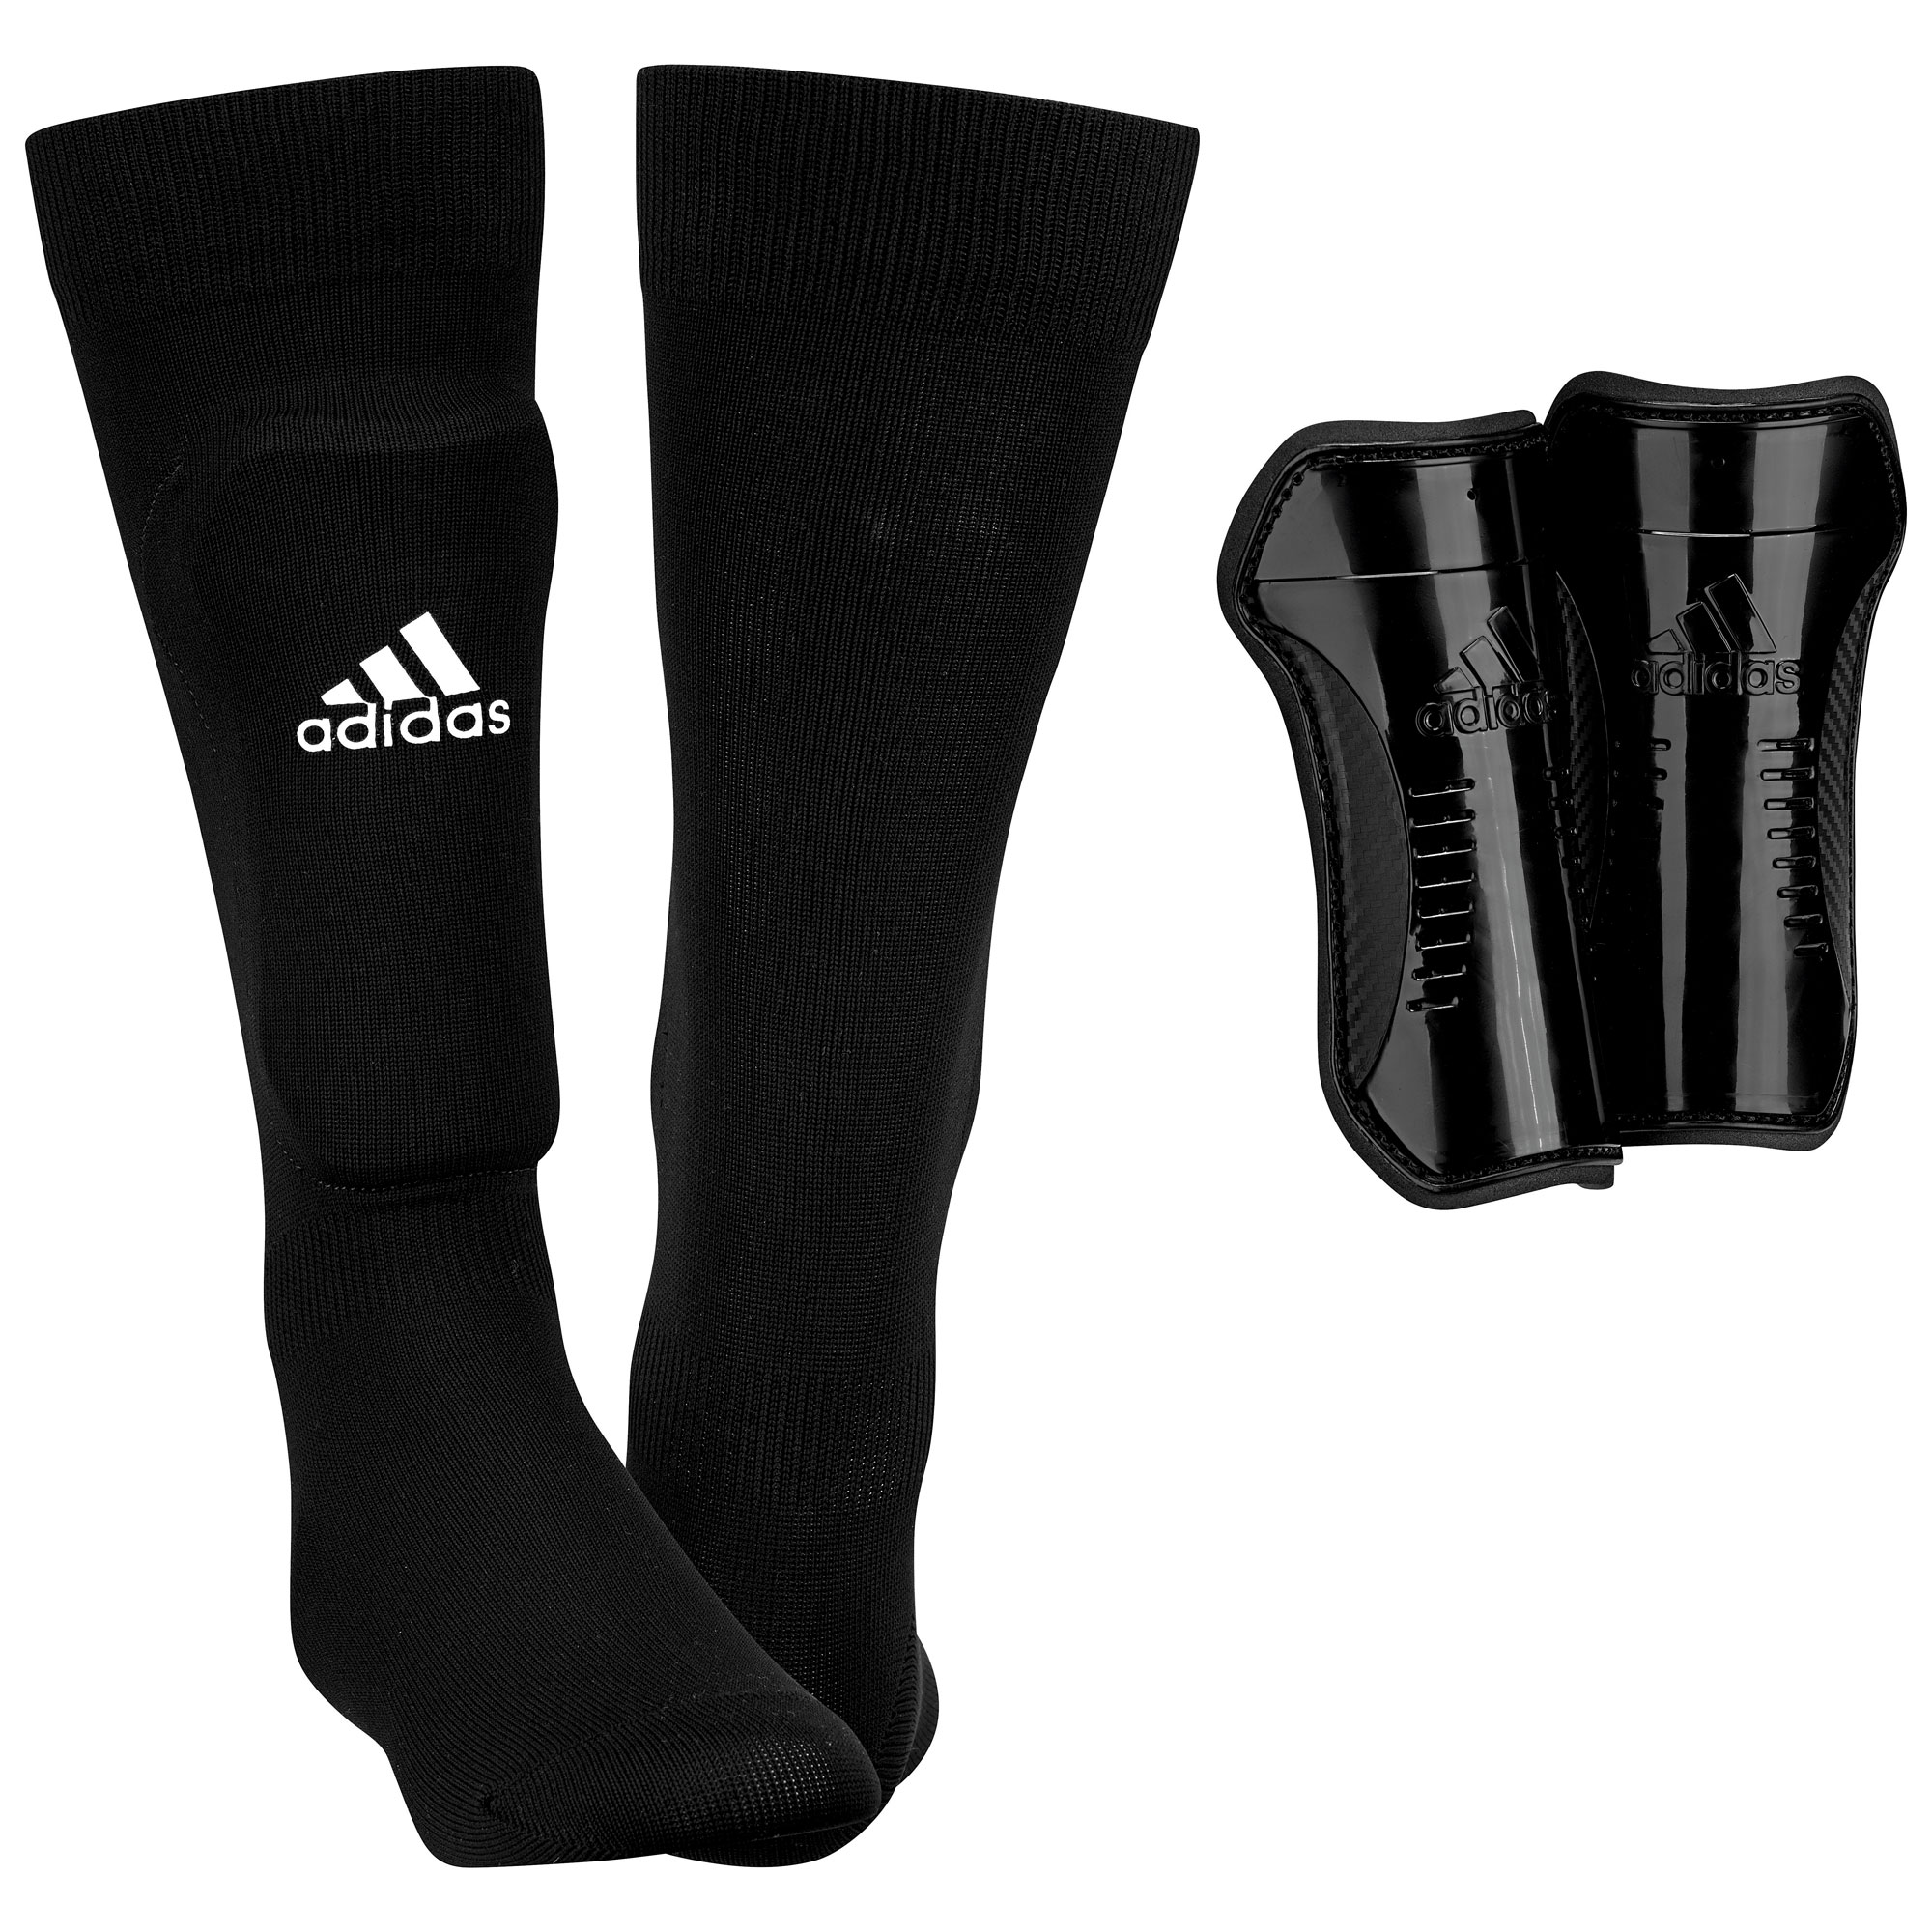 adidas Kinder Schienbeinschoner Youth Sock Guard AH7764 M